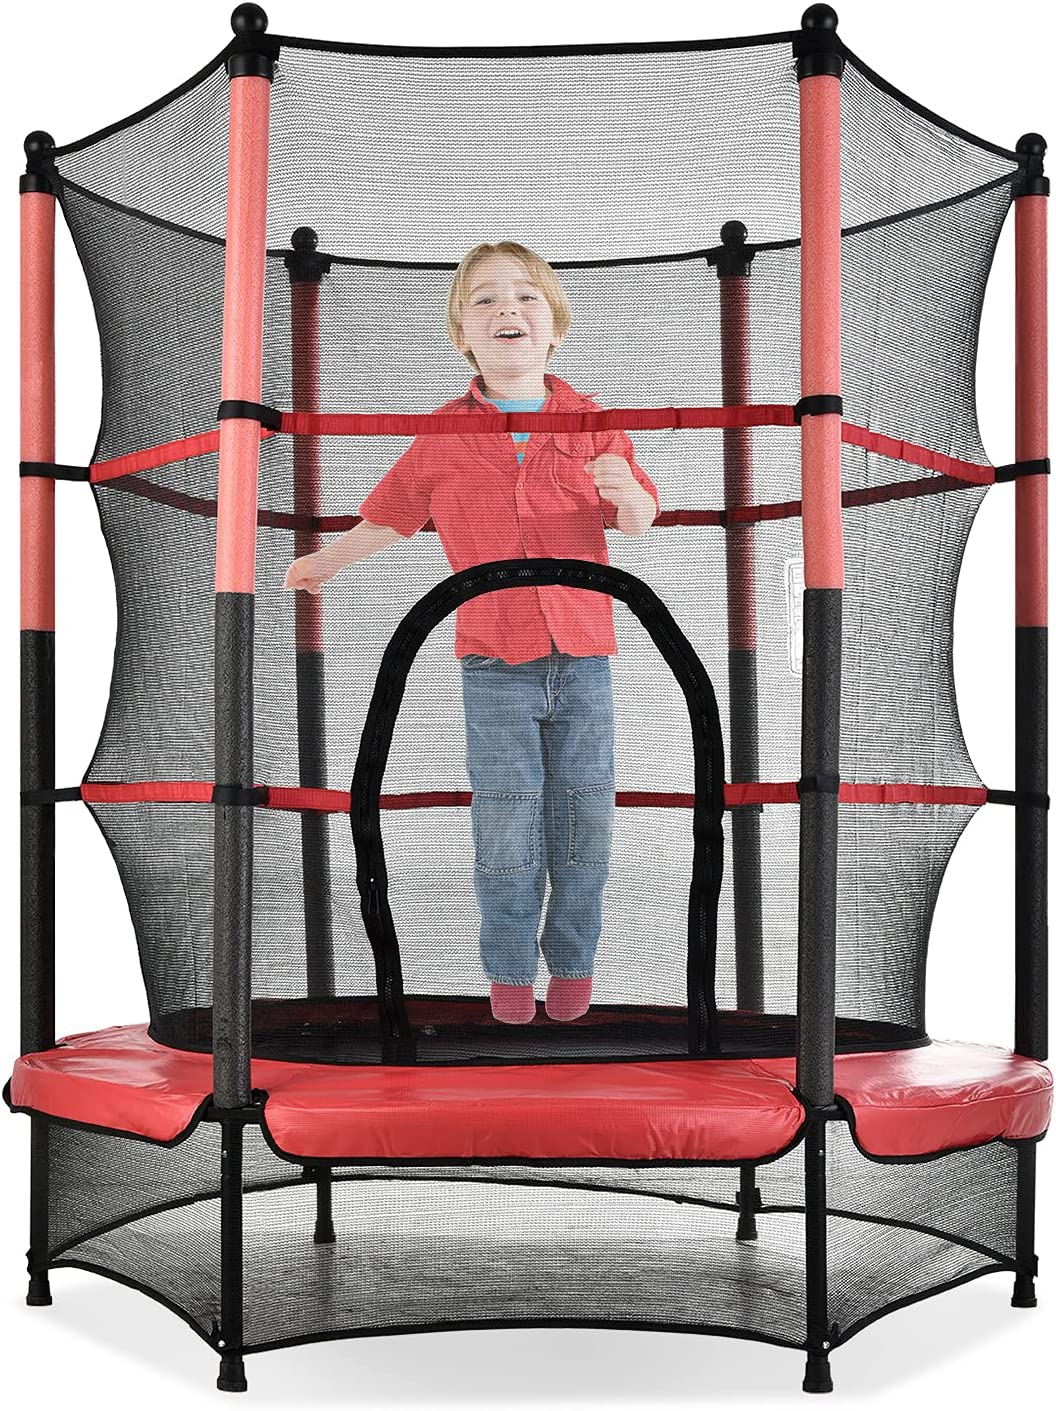 55-inch Special Campaign Trampoline for Children Max Al sold out. Gua 110lbs Pink-Black Load